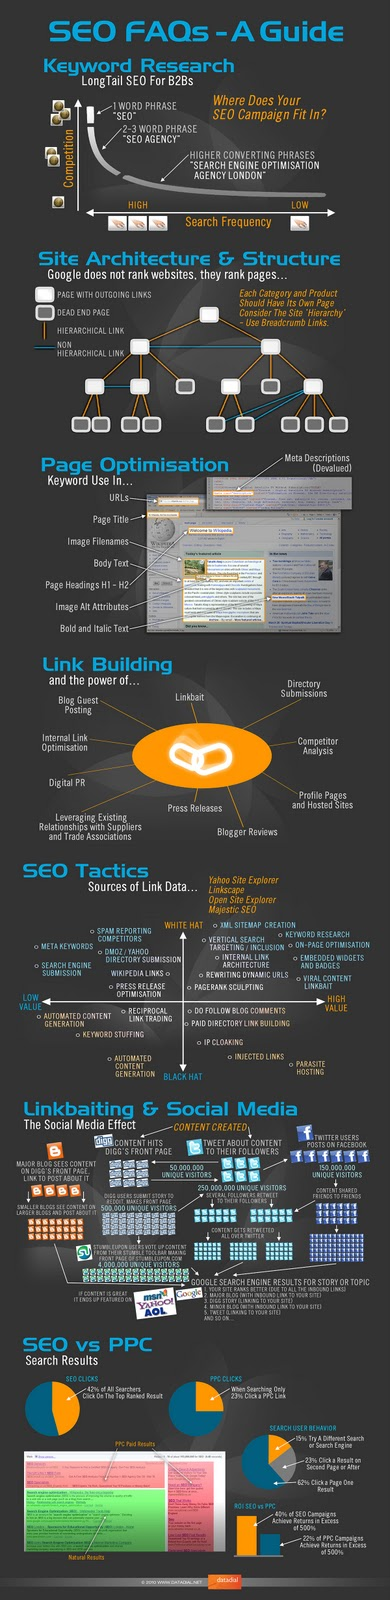 Infographic for SEO Guide